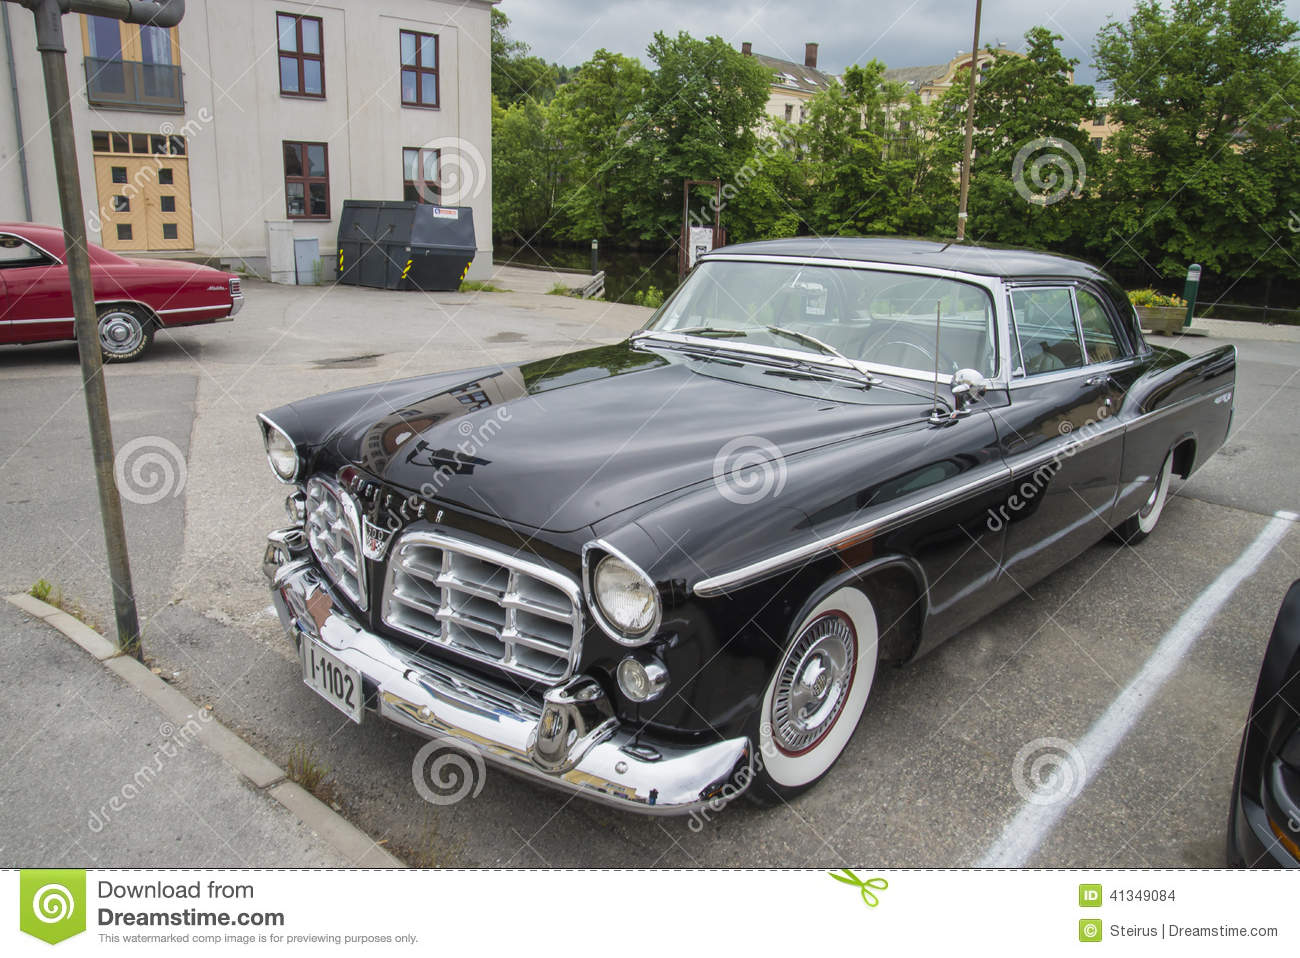 1956 Chrysler 300B editorial stock image. Image of automobile - 41349084